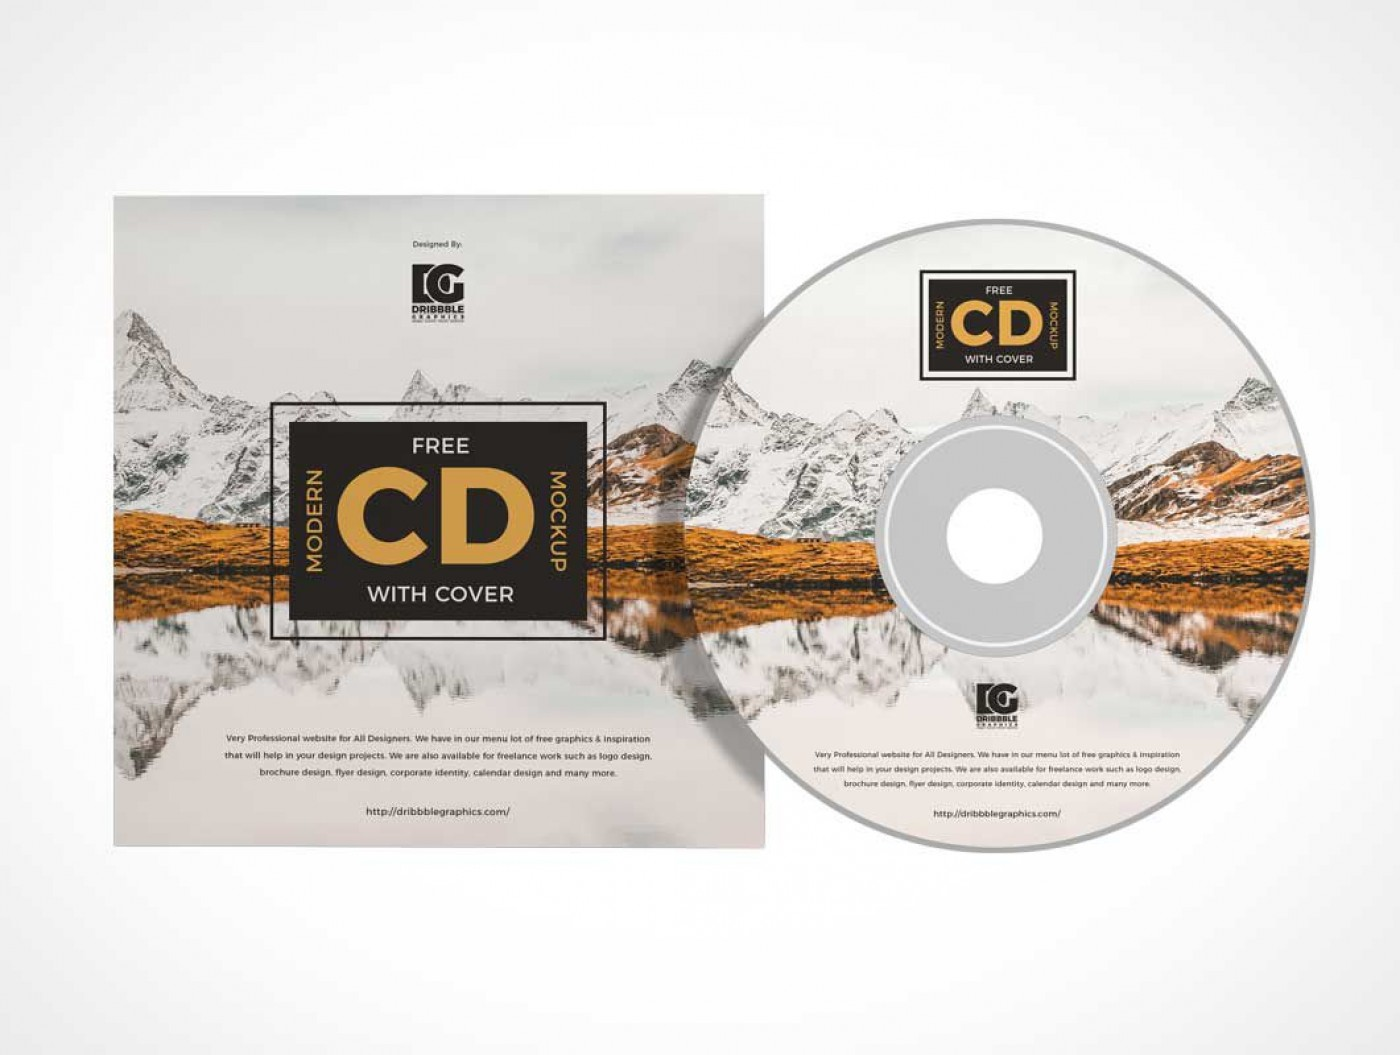 006 Stunning Music Cd Cover Design Template Free Download High Definition 1400